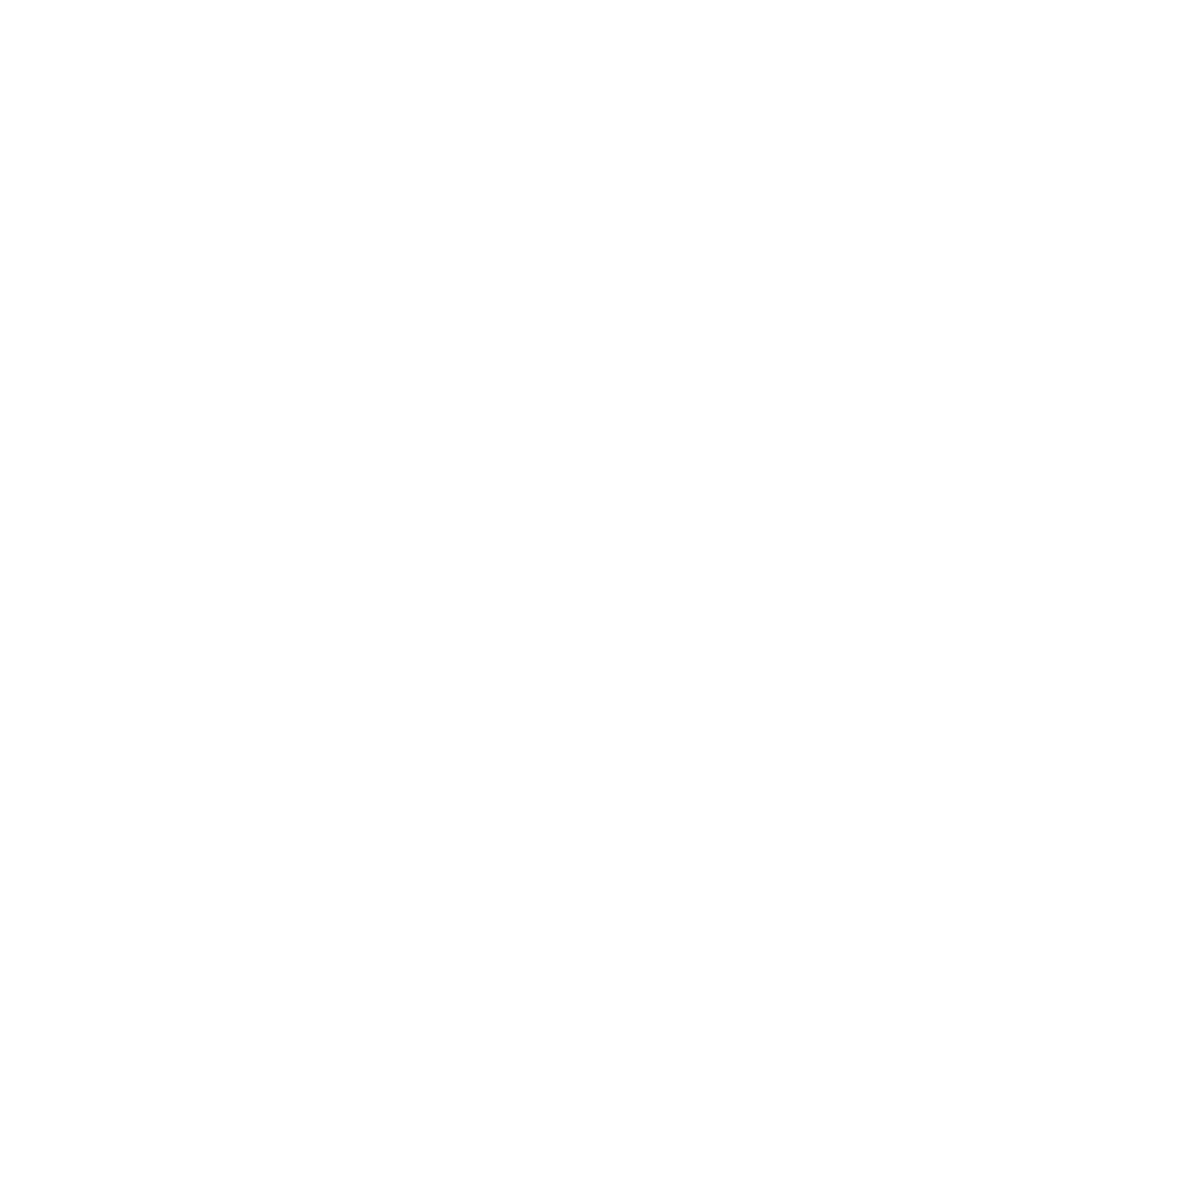 Aesthetic Digital Design & Media